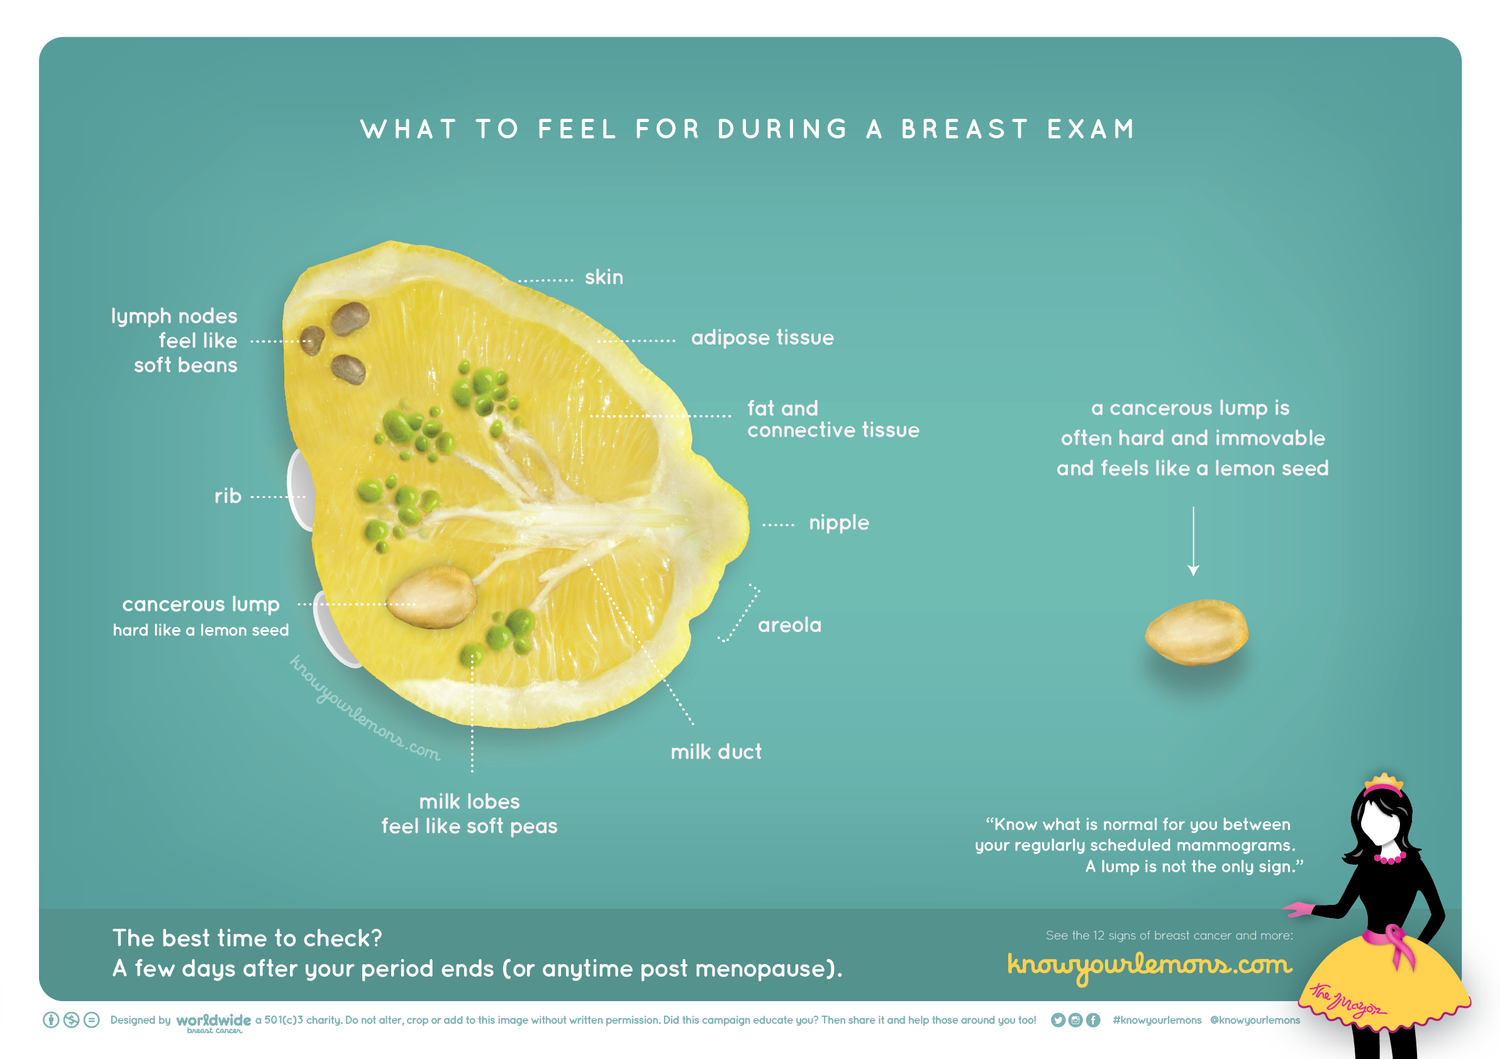 Illustration of breast using lemon